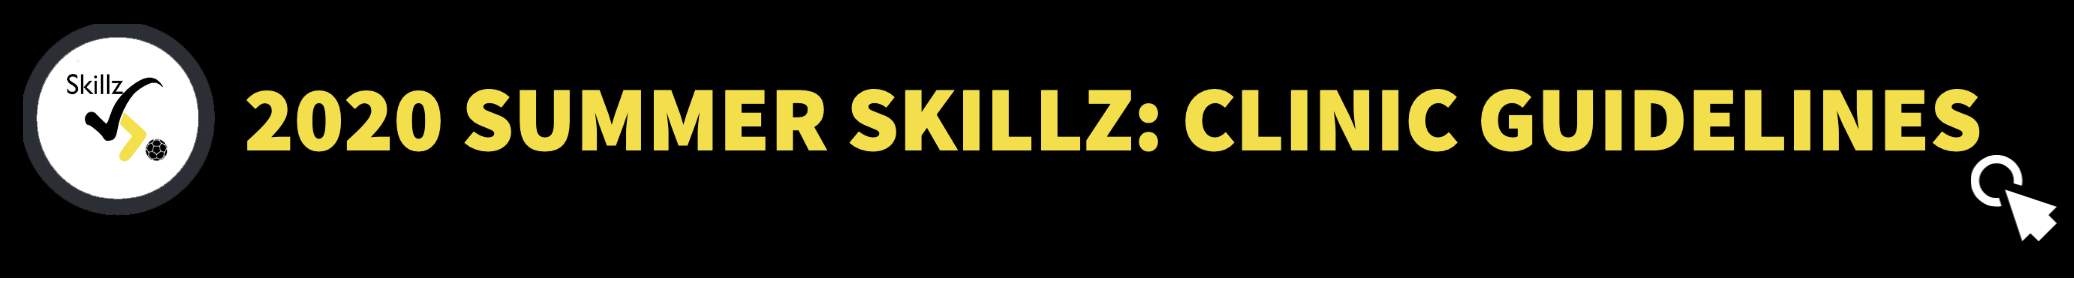 2020 Summer Skillz: Clinic Guidelines